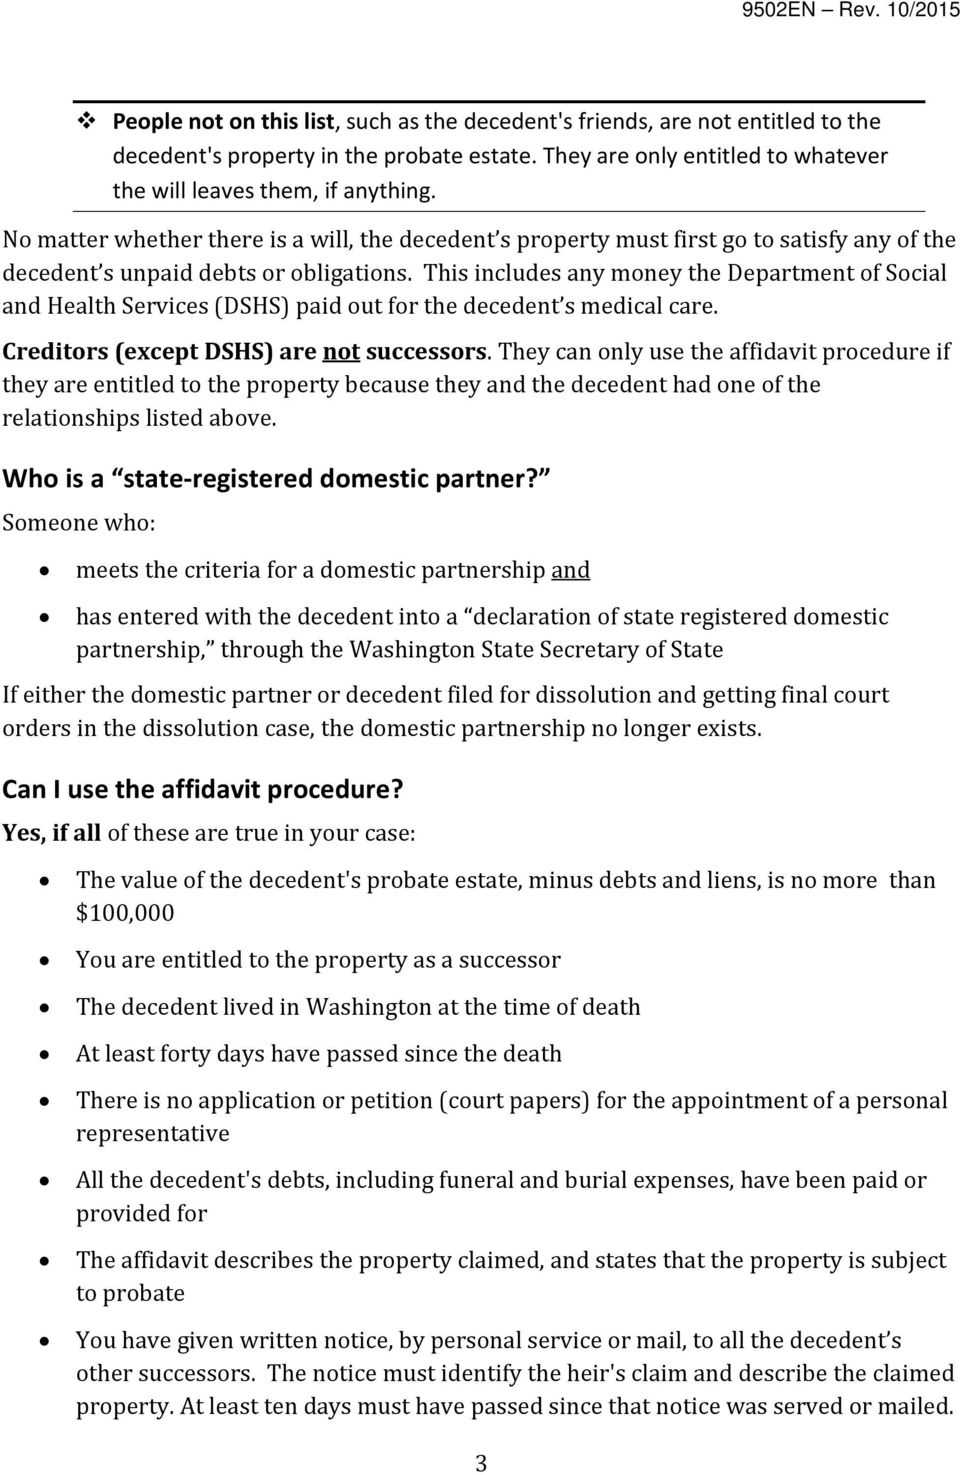 How to claim the personal property of someone who has died do it this includes any money the department of social and health services dshs paid out solutioingenieria Image collections